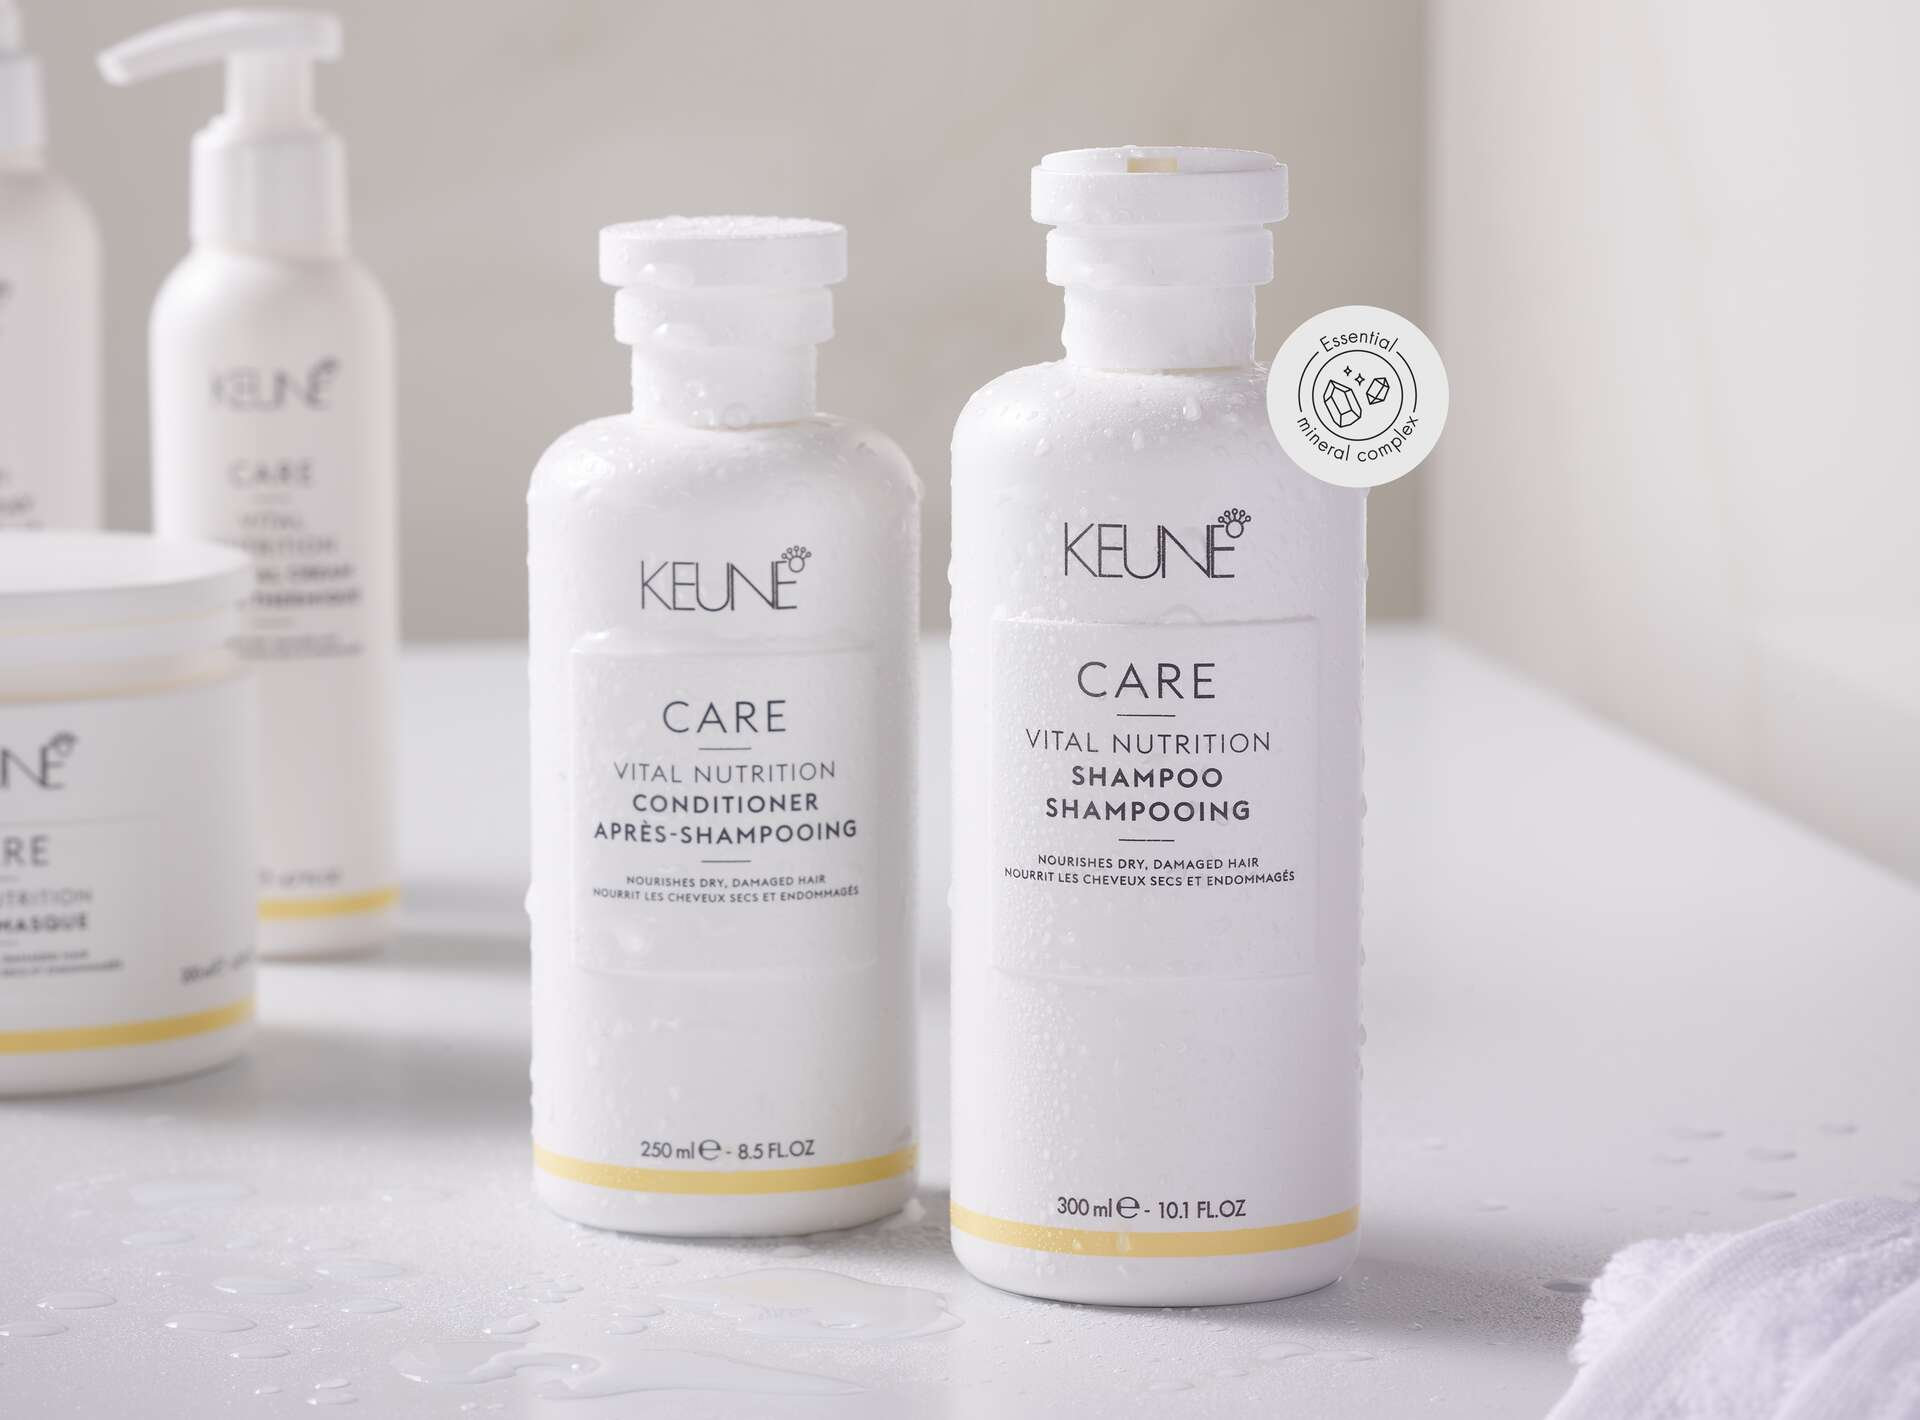 page hero 1920x1420 medium-Keune-Care-Vital-Nutrition-Shampoo-Conditioner-Lifestyle-v2-API1